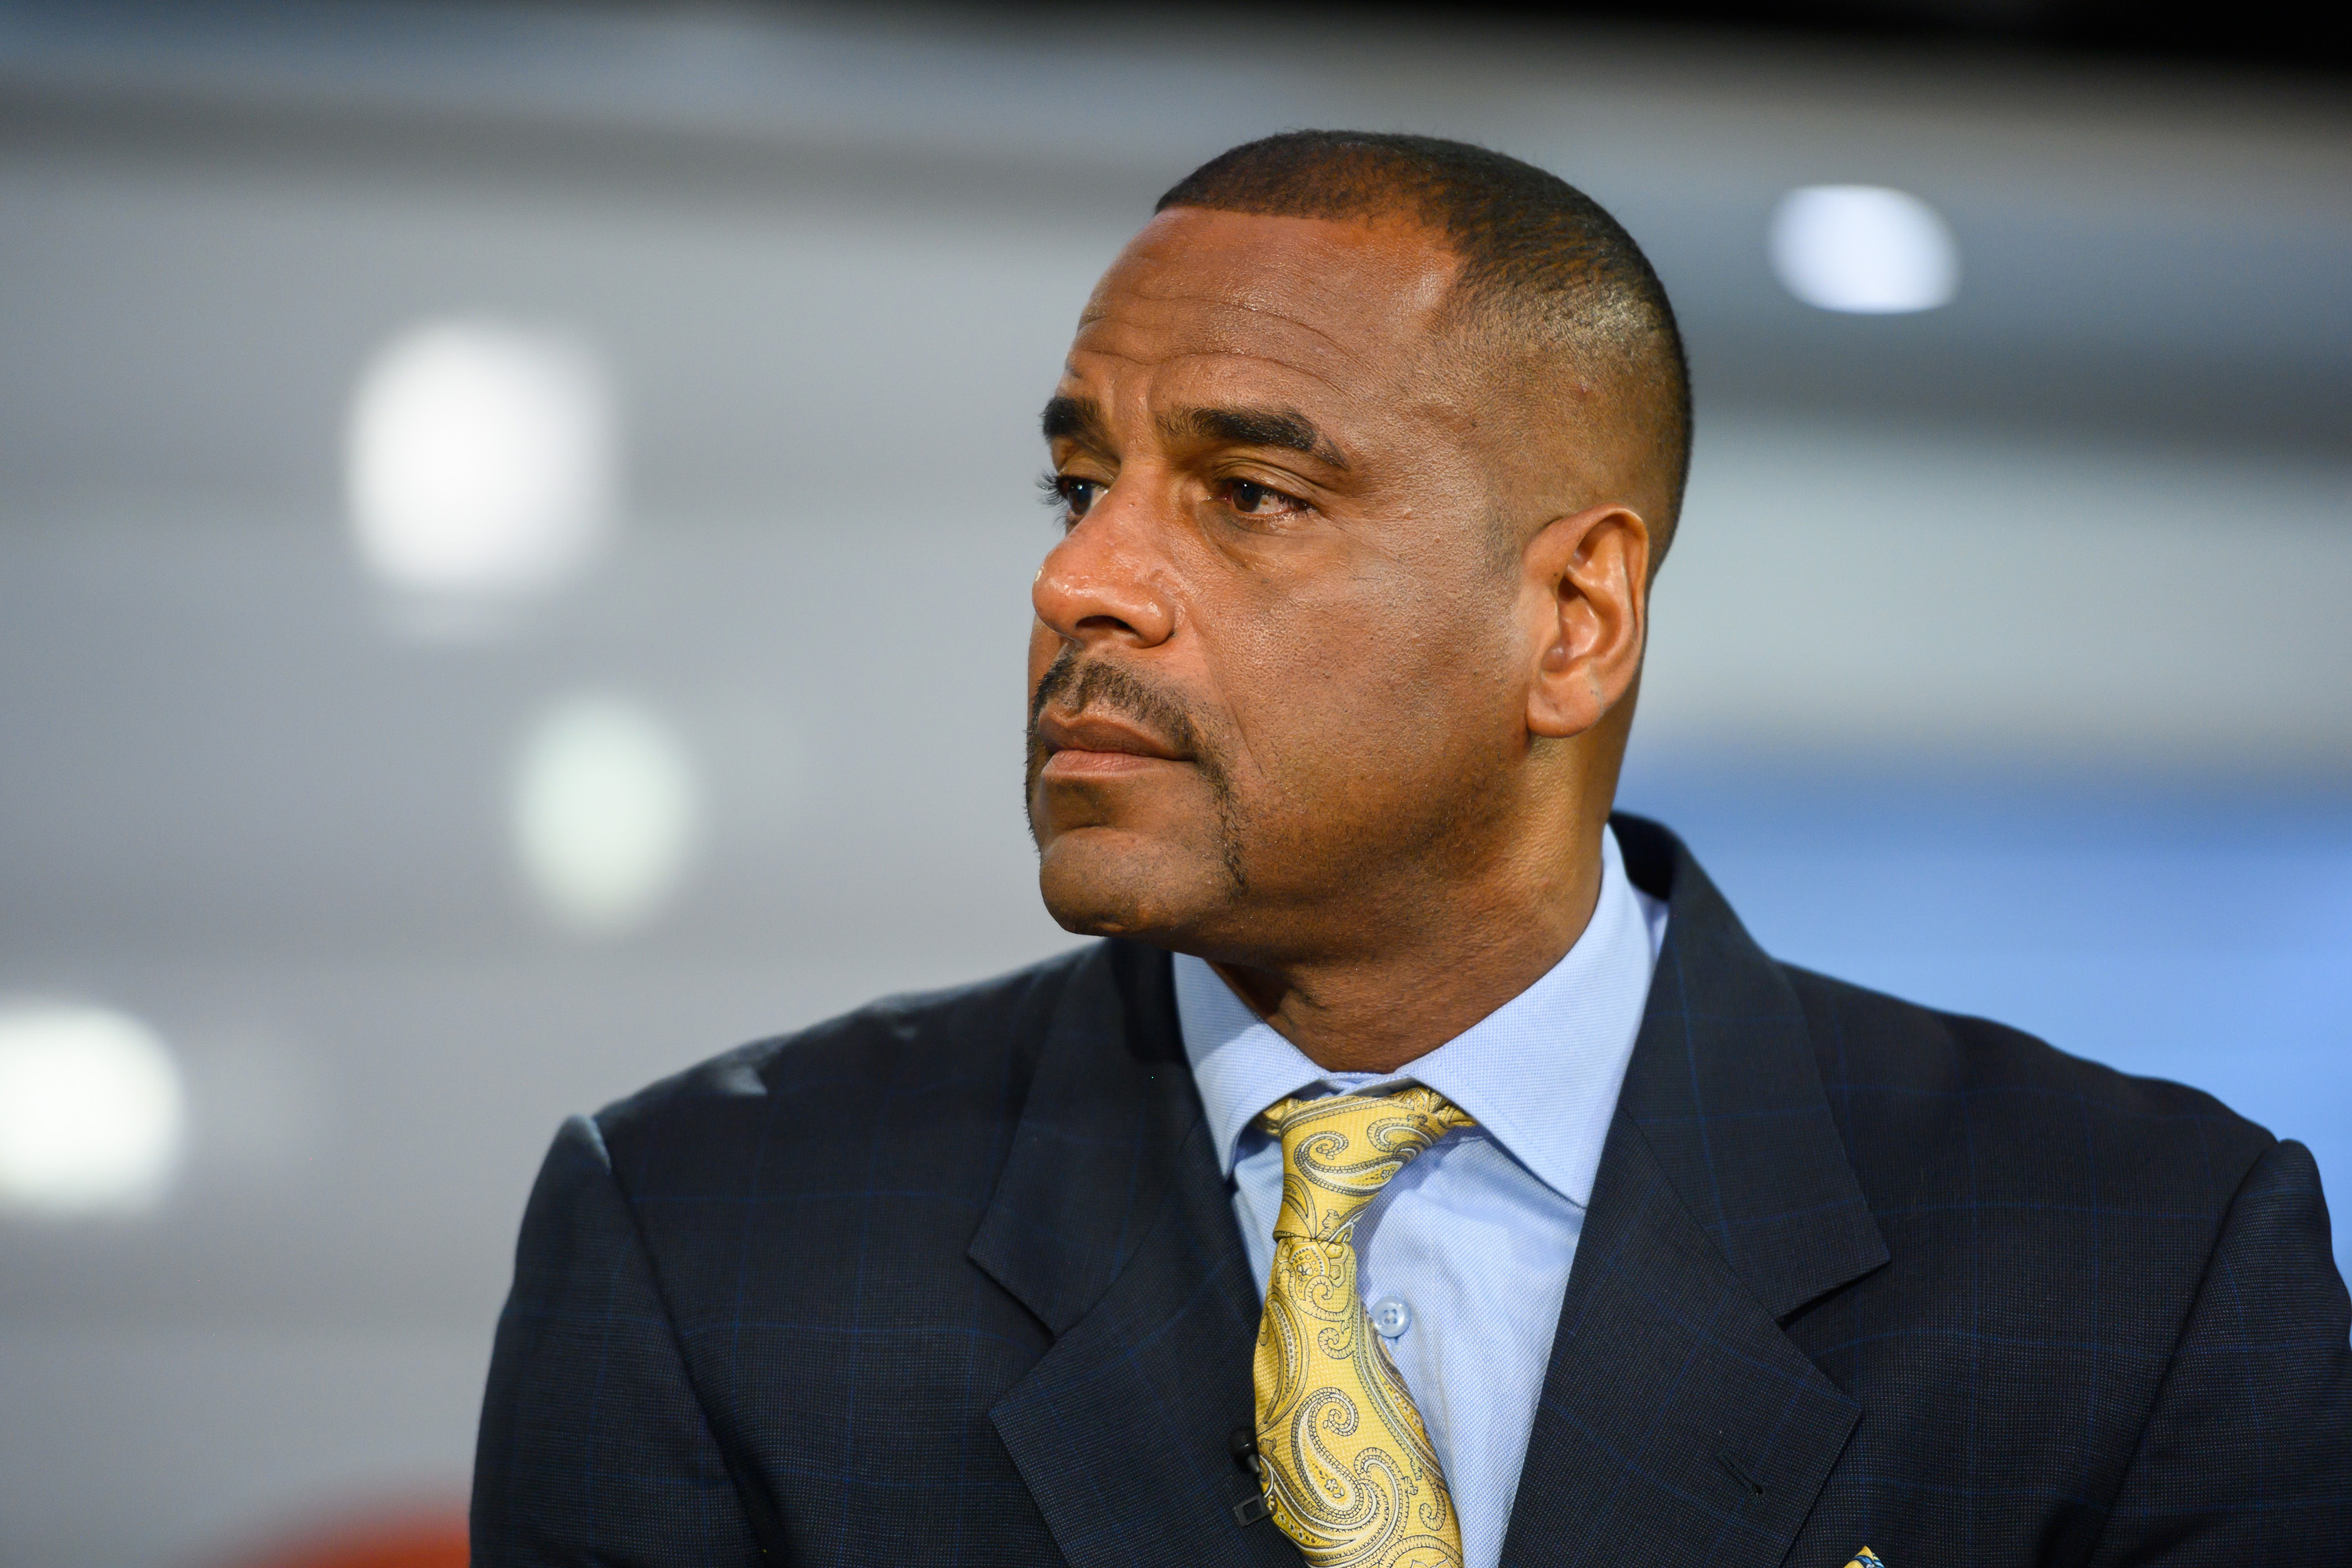 Despite all his struggles, Jayson Williams was one good father when he was a college student.